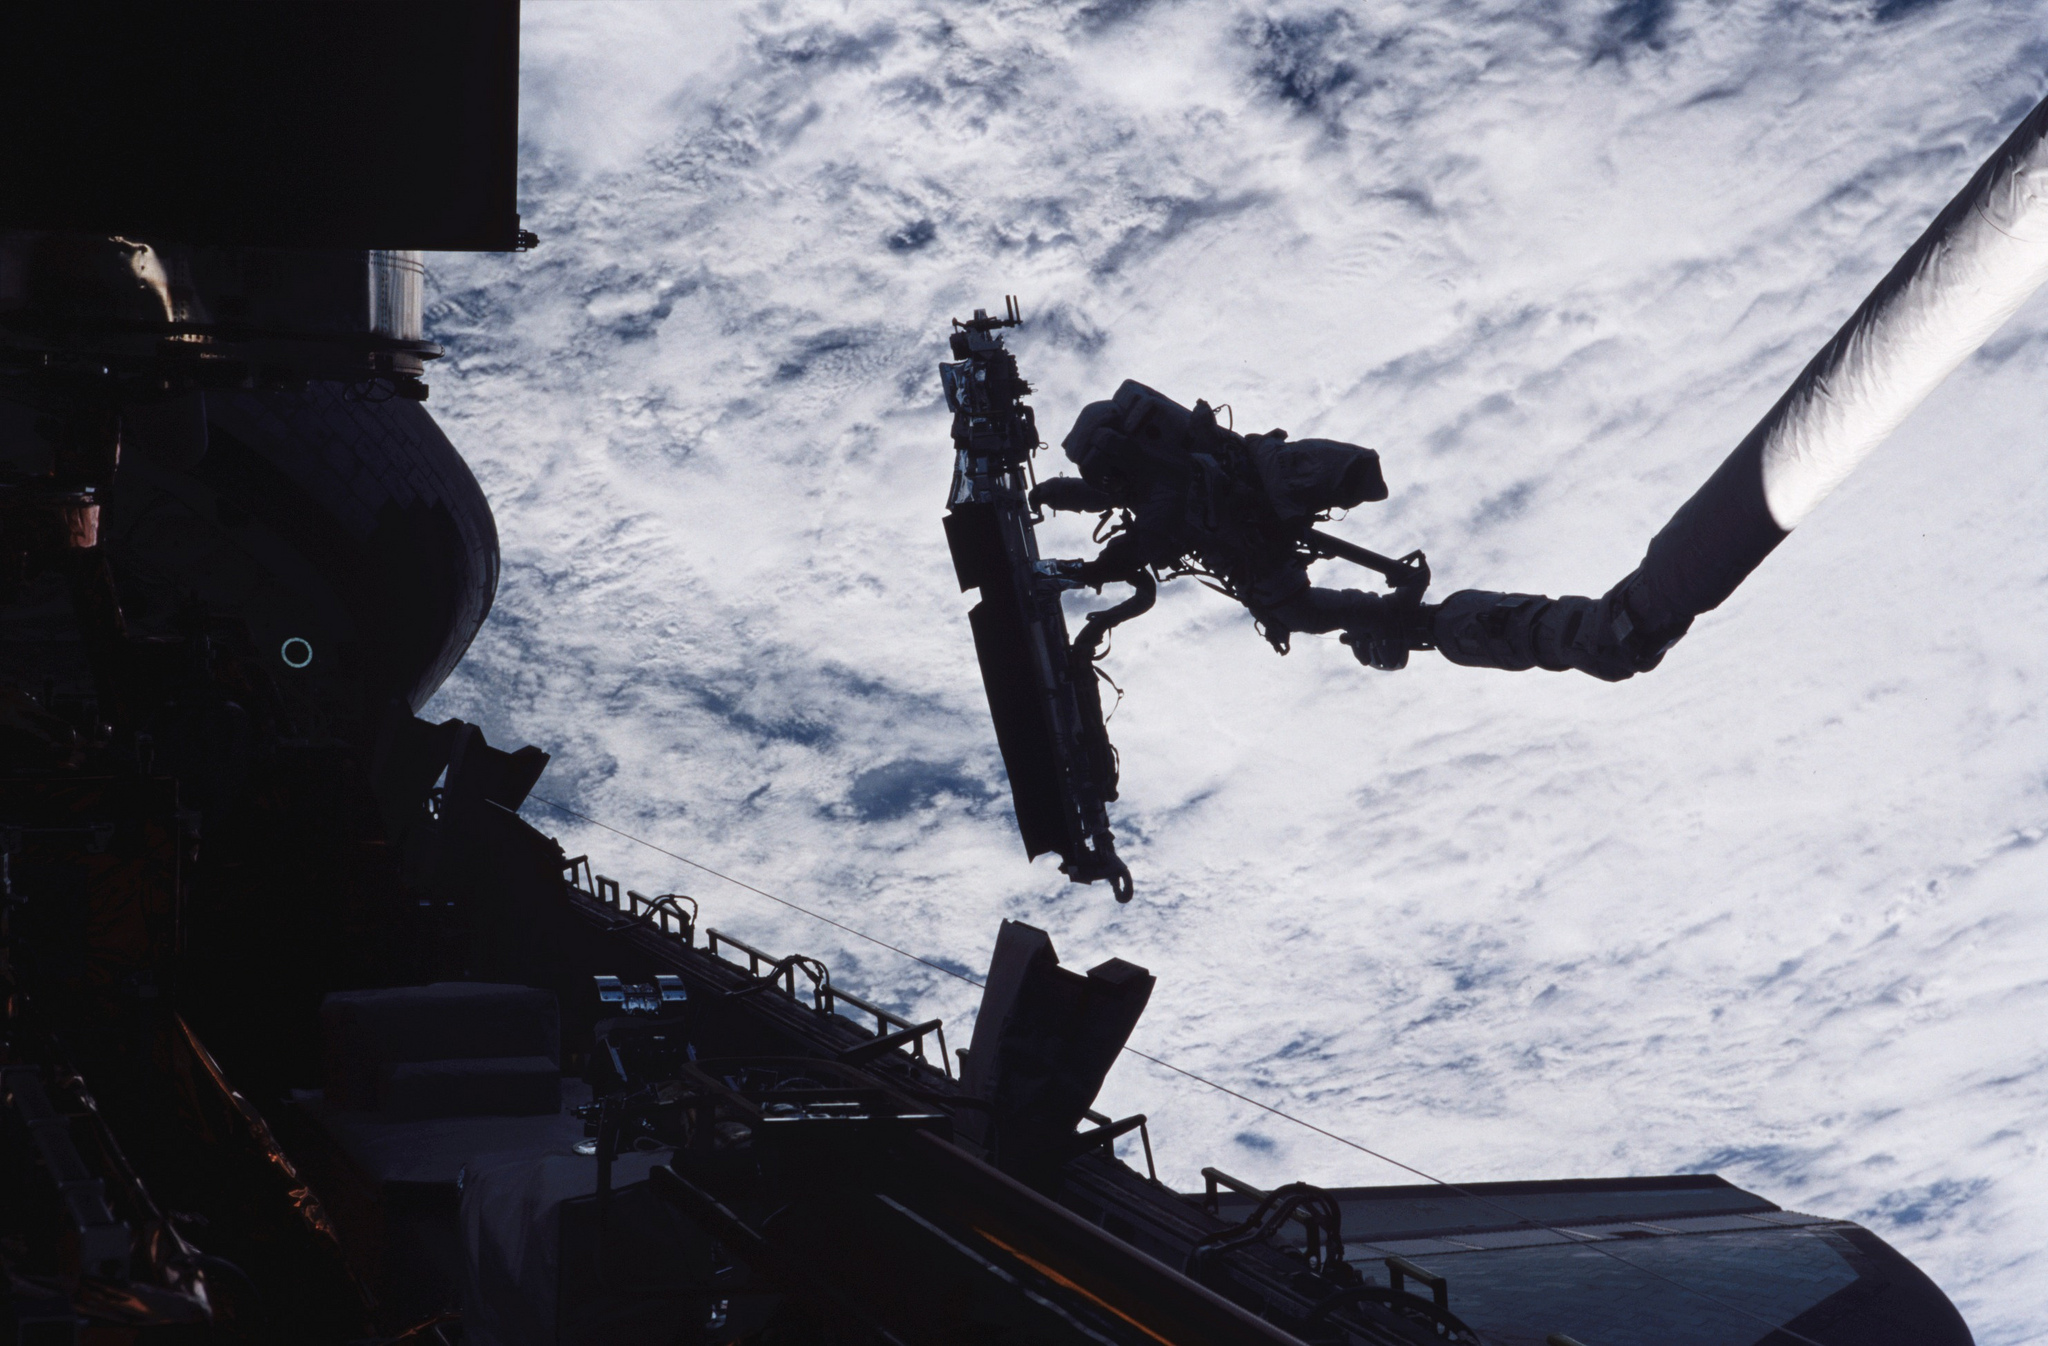 John Grunsfeld, STS-109 payload commander, is anchored on the end of the Space Shuttle Columbia's robotic arm, moving toward the giant Hubble Space Telescope in 2002.